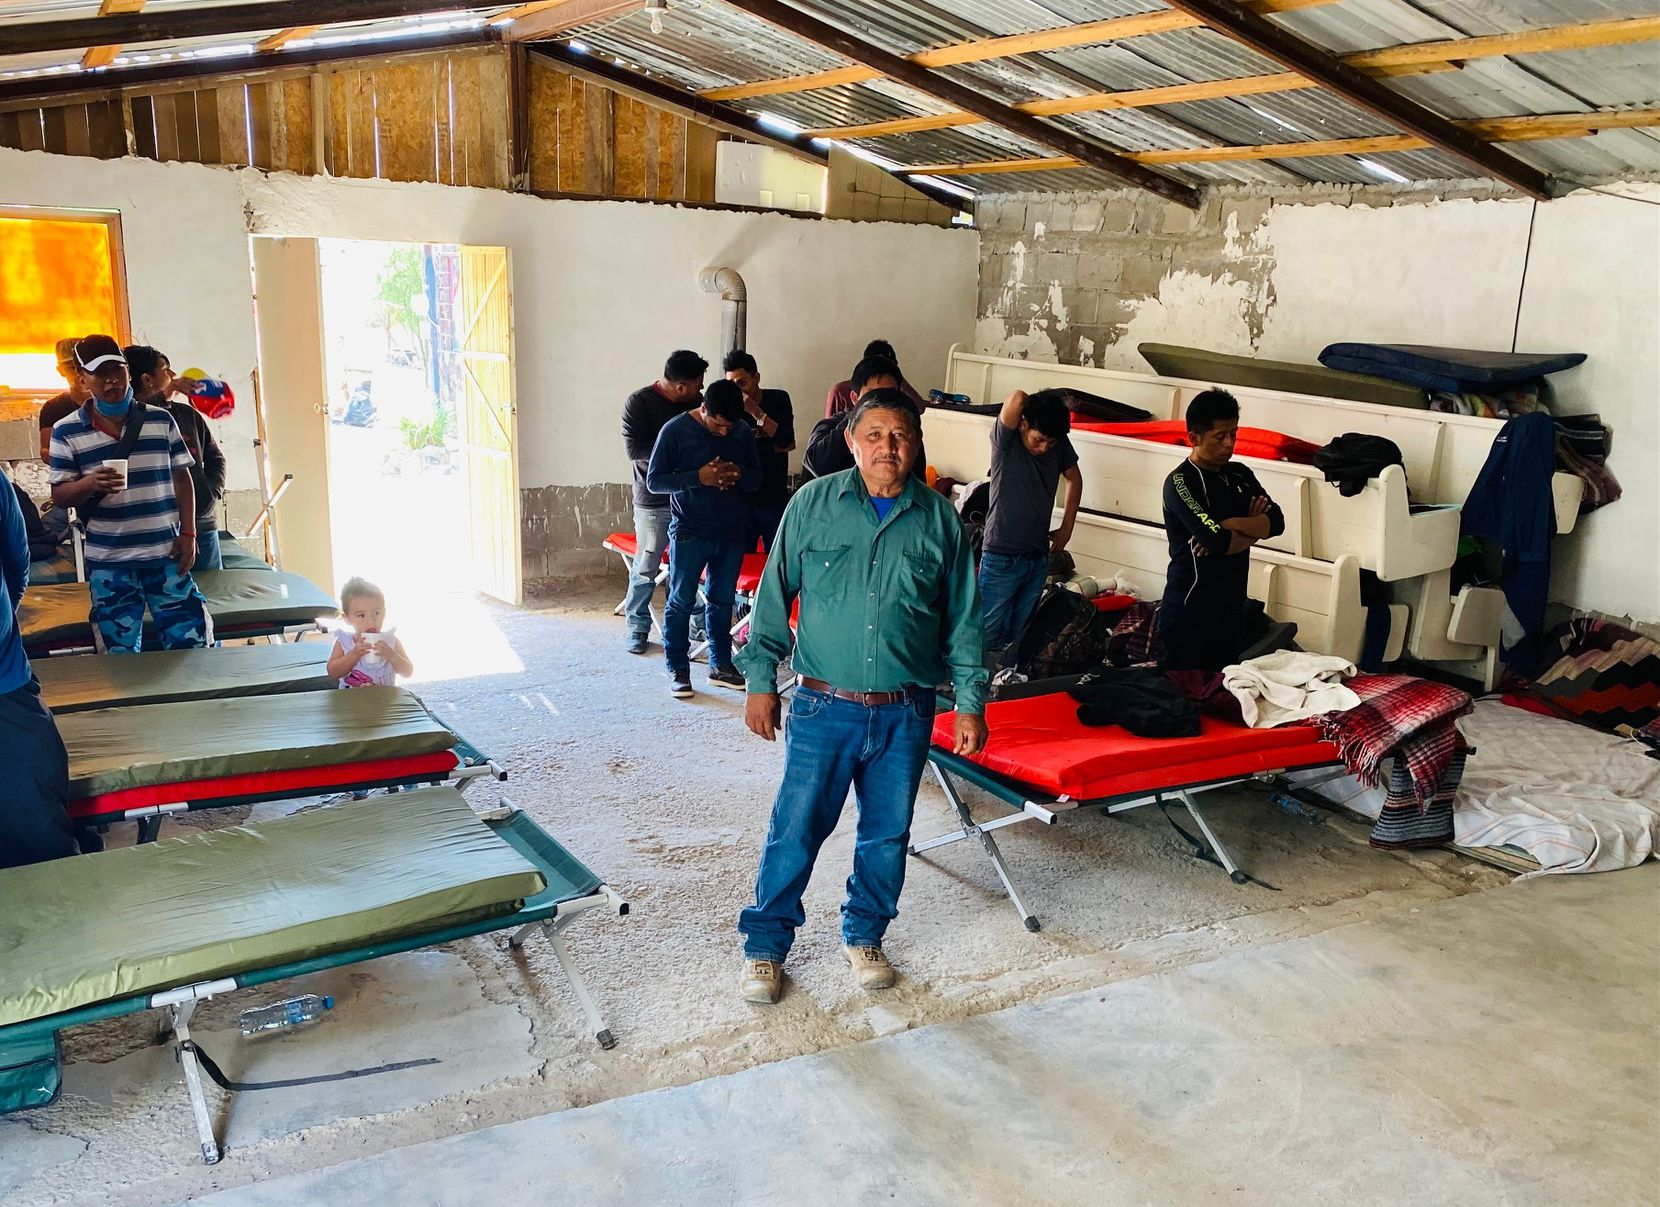 Pastor Jose Medrano stands inside his shelter-turned-ministry, Casa de Oracion El Peregrino on April 27 in Ojinaga, Chihuahua, across from Presidio, Texas. The shelter serves migrants from Central America.